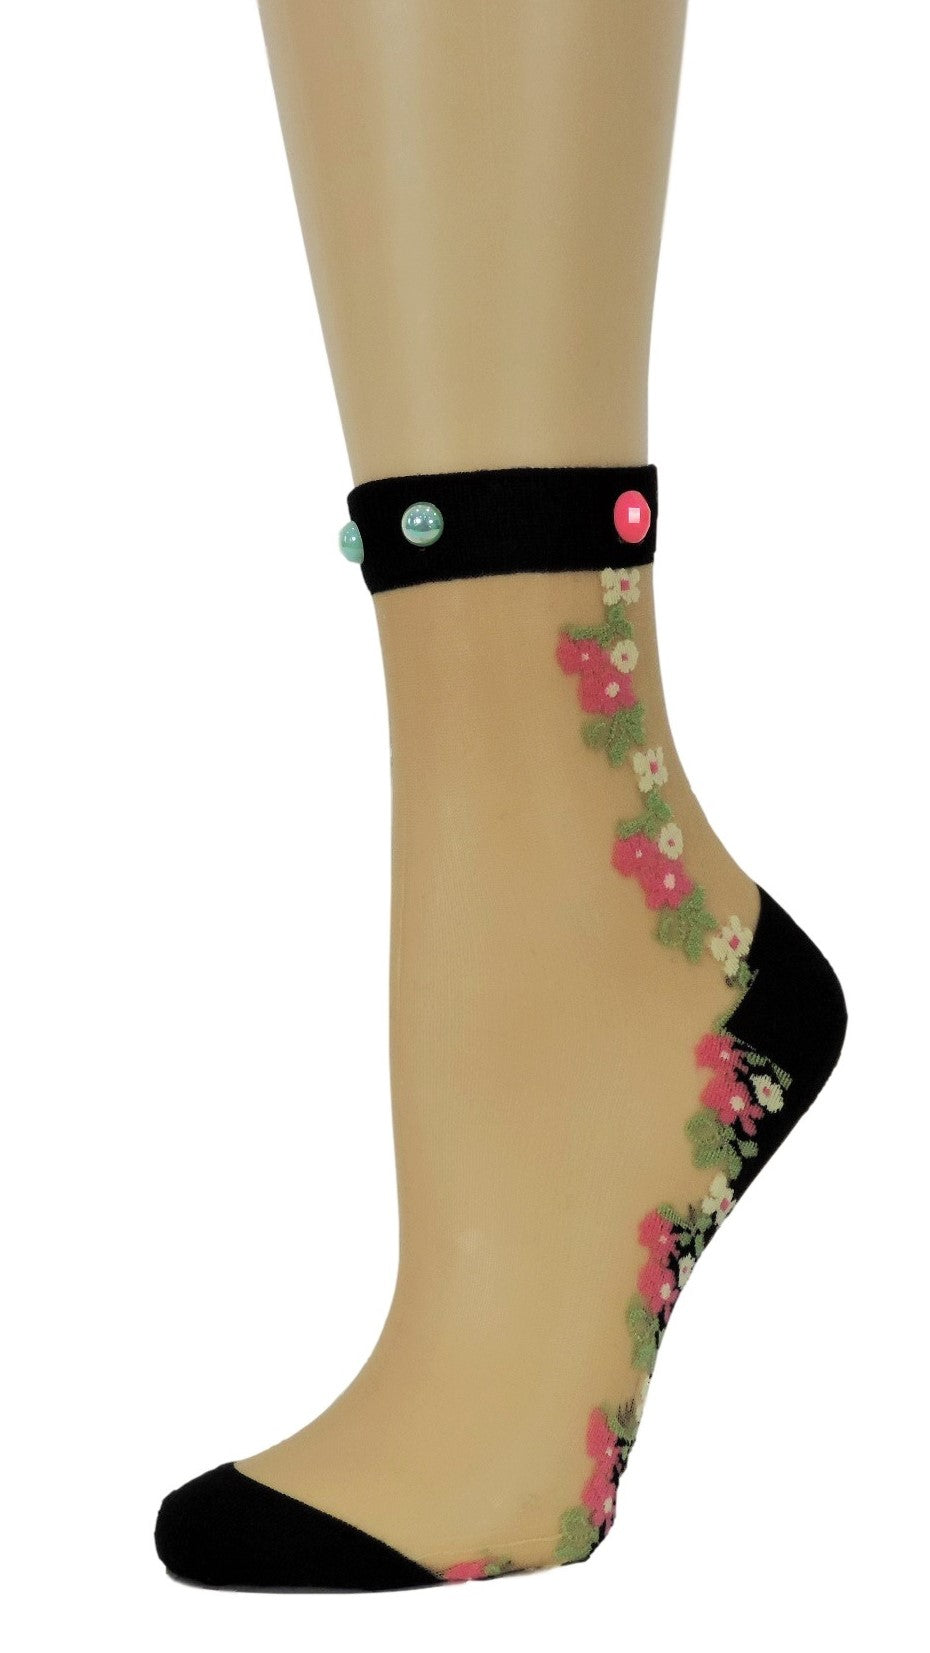 Sharp Pink/Yellow Flowers Custom Sheer Socks with beads